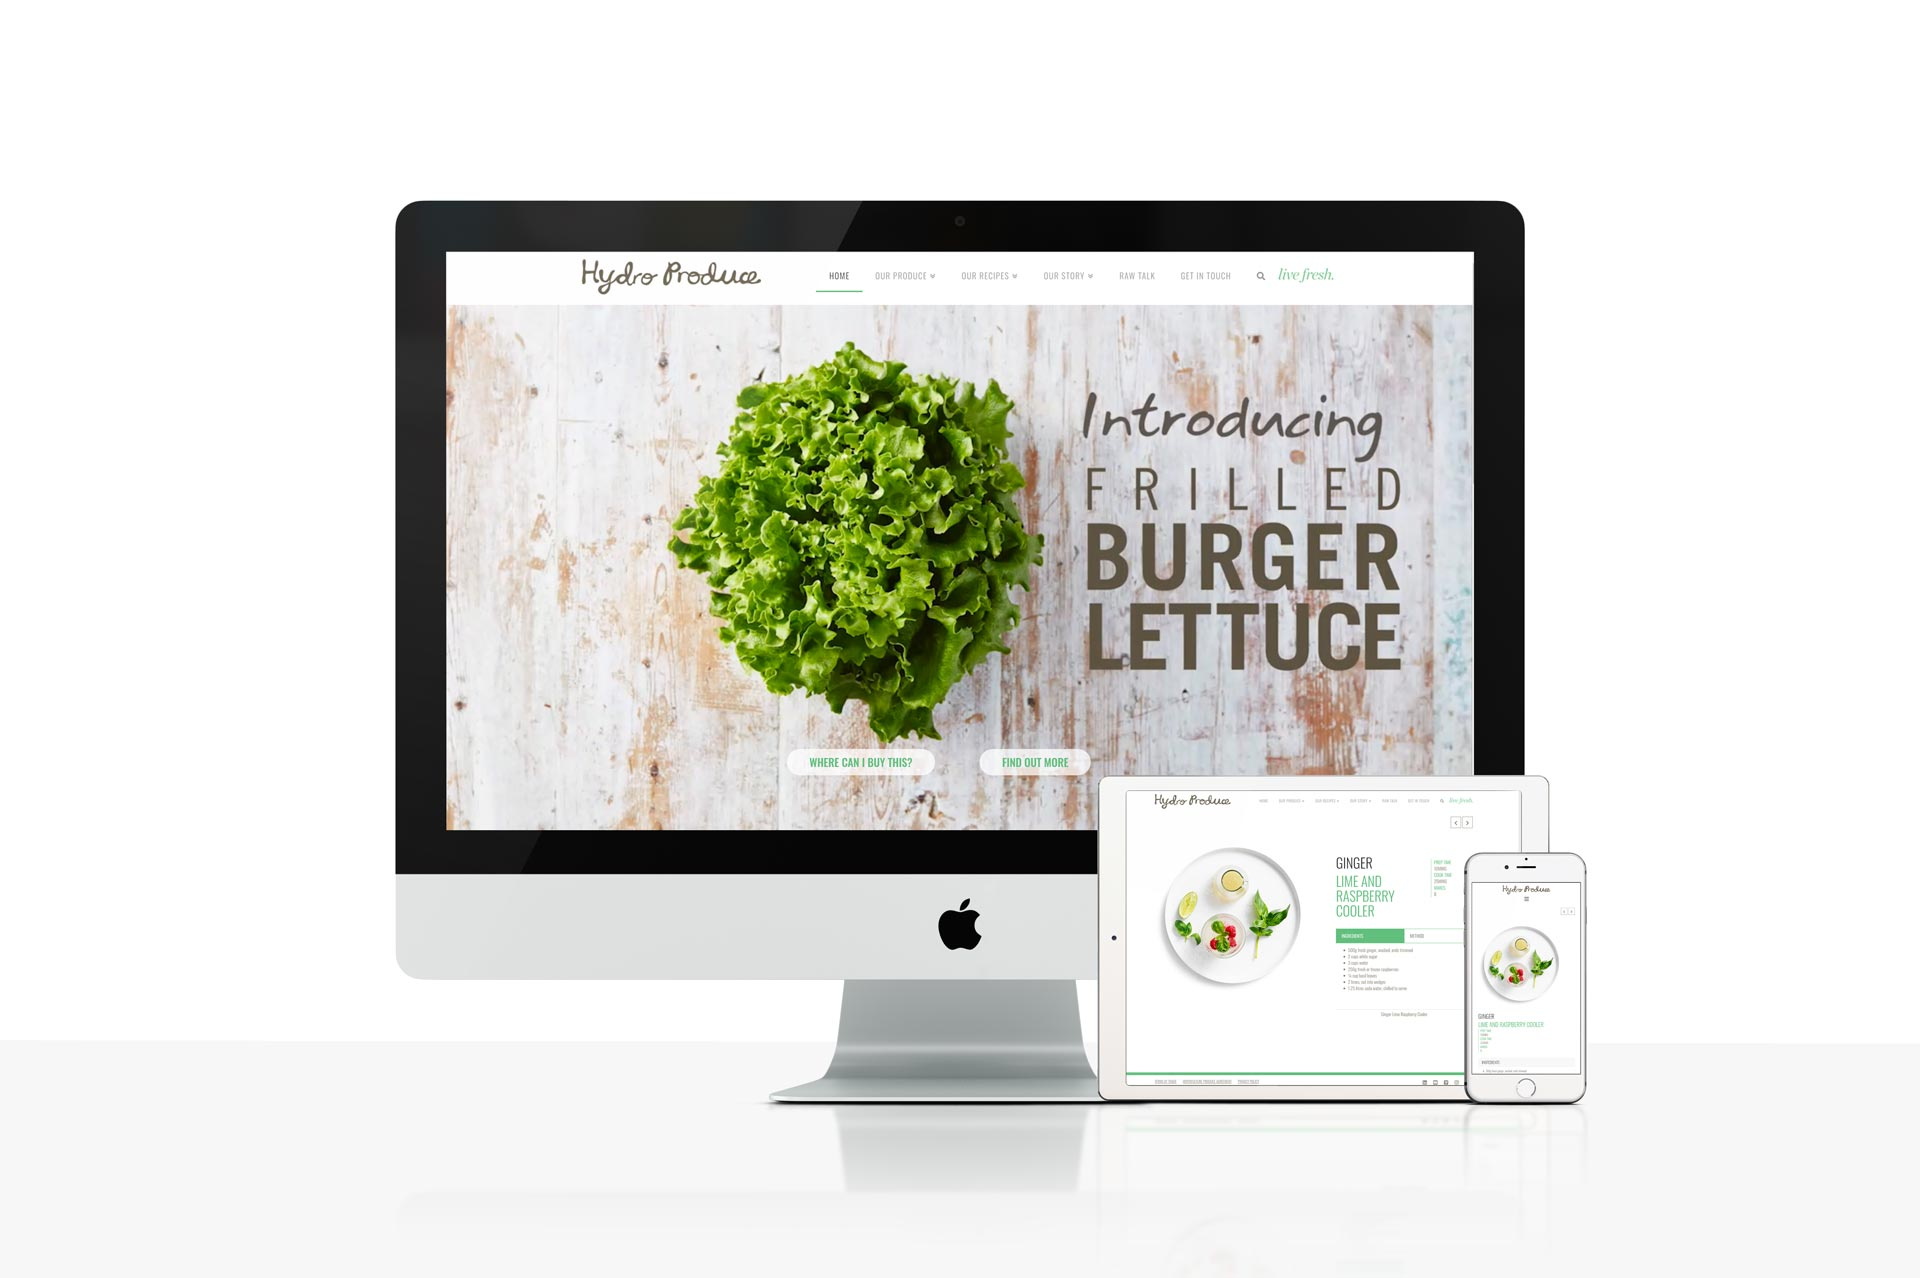 Web Design & Development Project - Hydro Produce - By Design Counsel